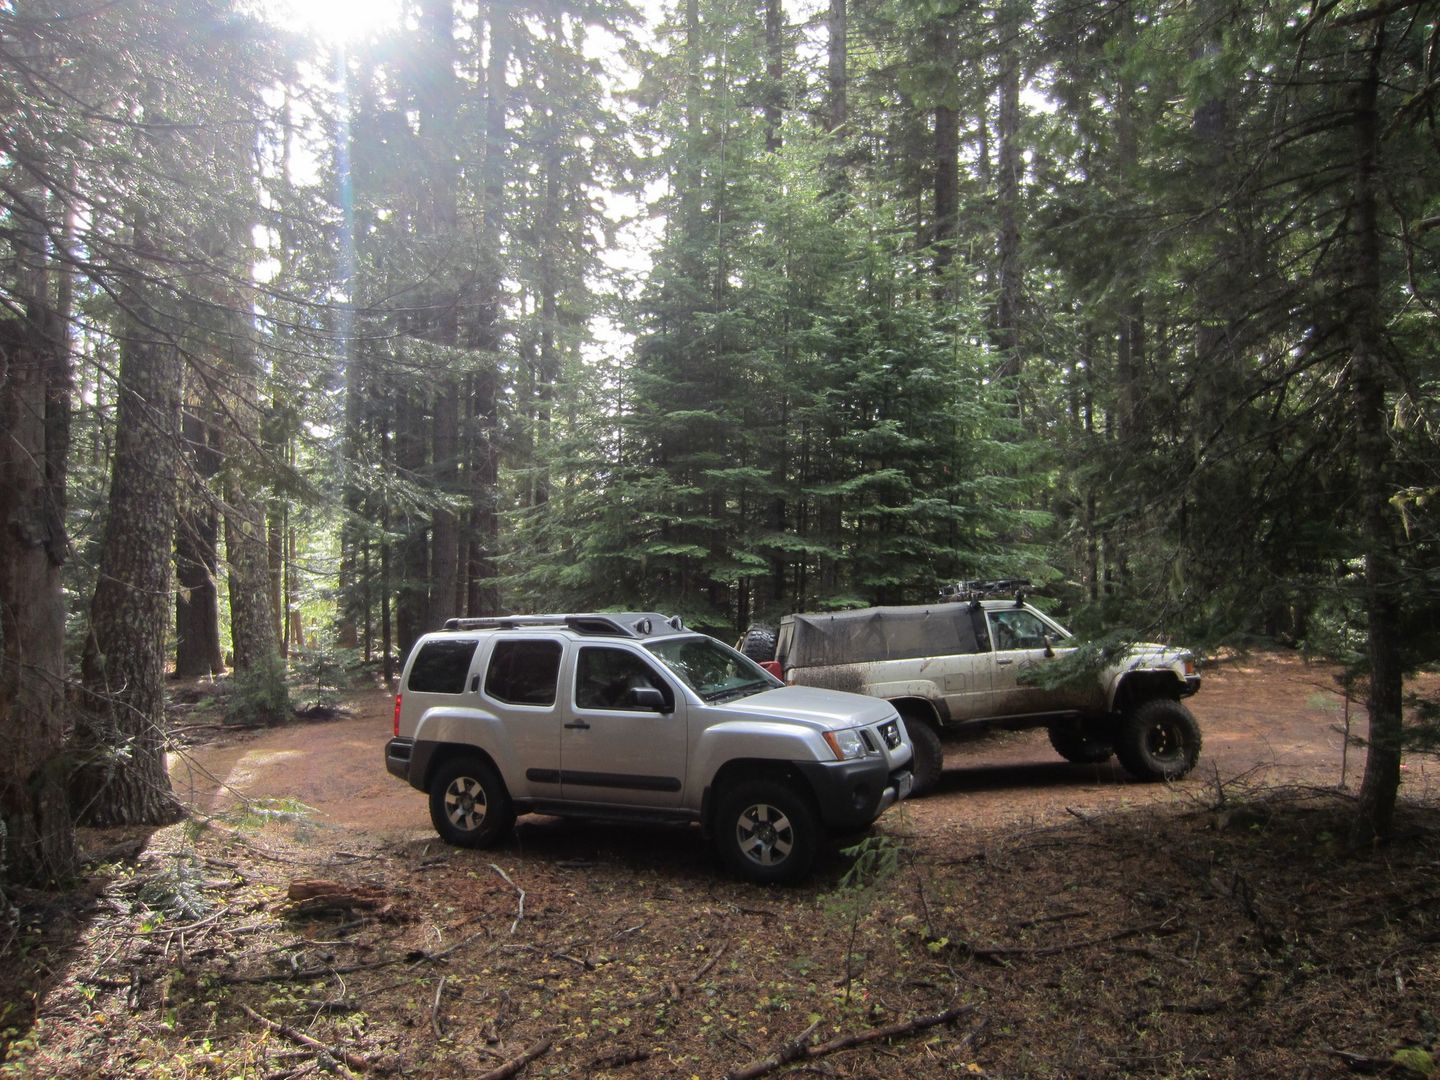 Barlow Trail - Waypoint 11: Stay to the Right